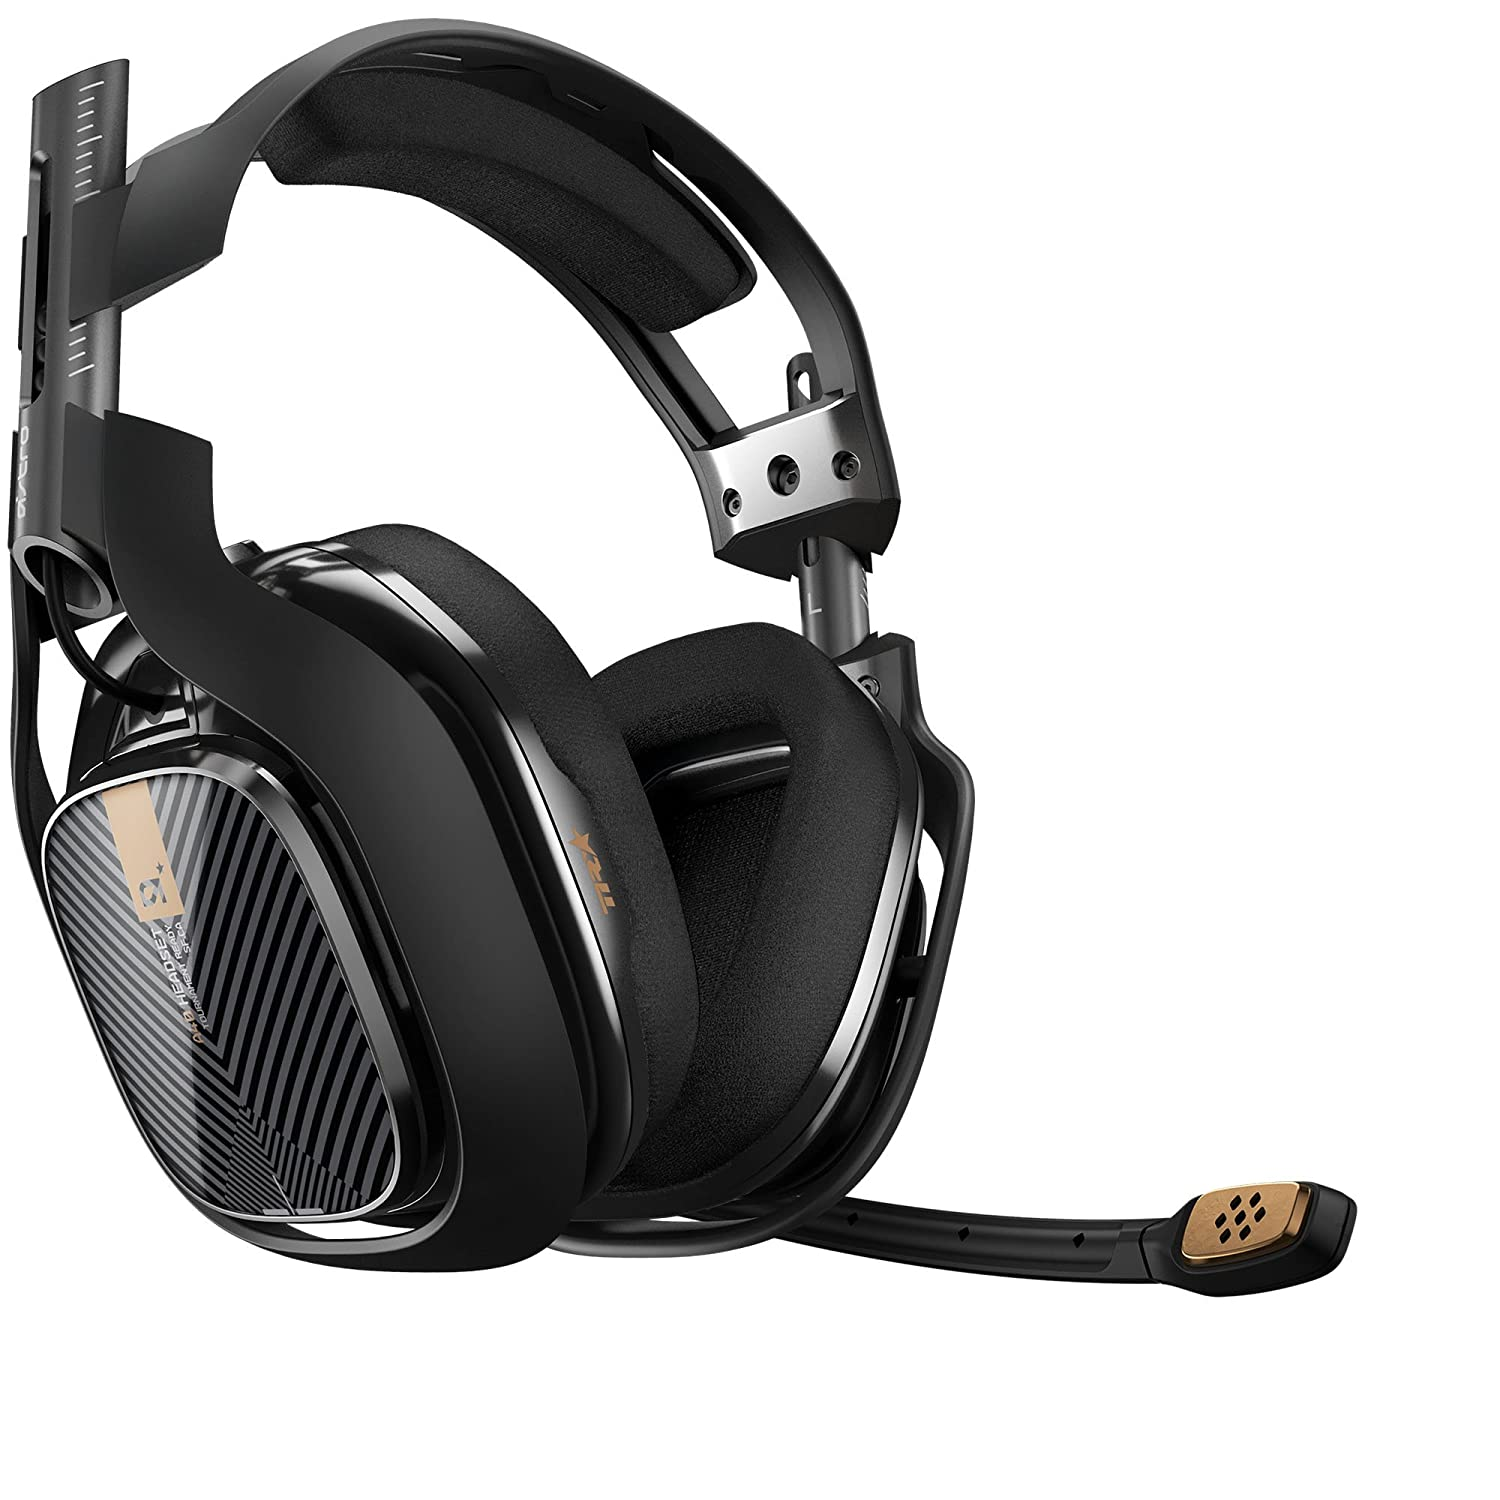 ASTRO A40 Gaming headset with mic